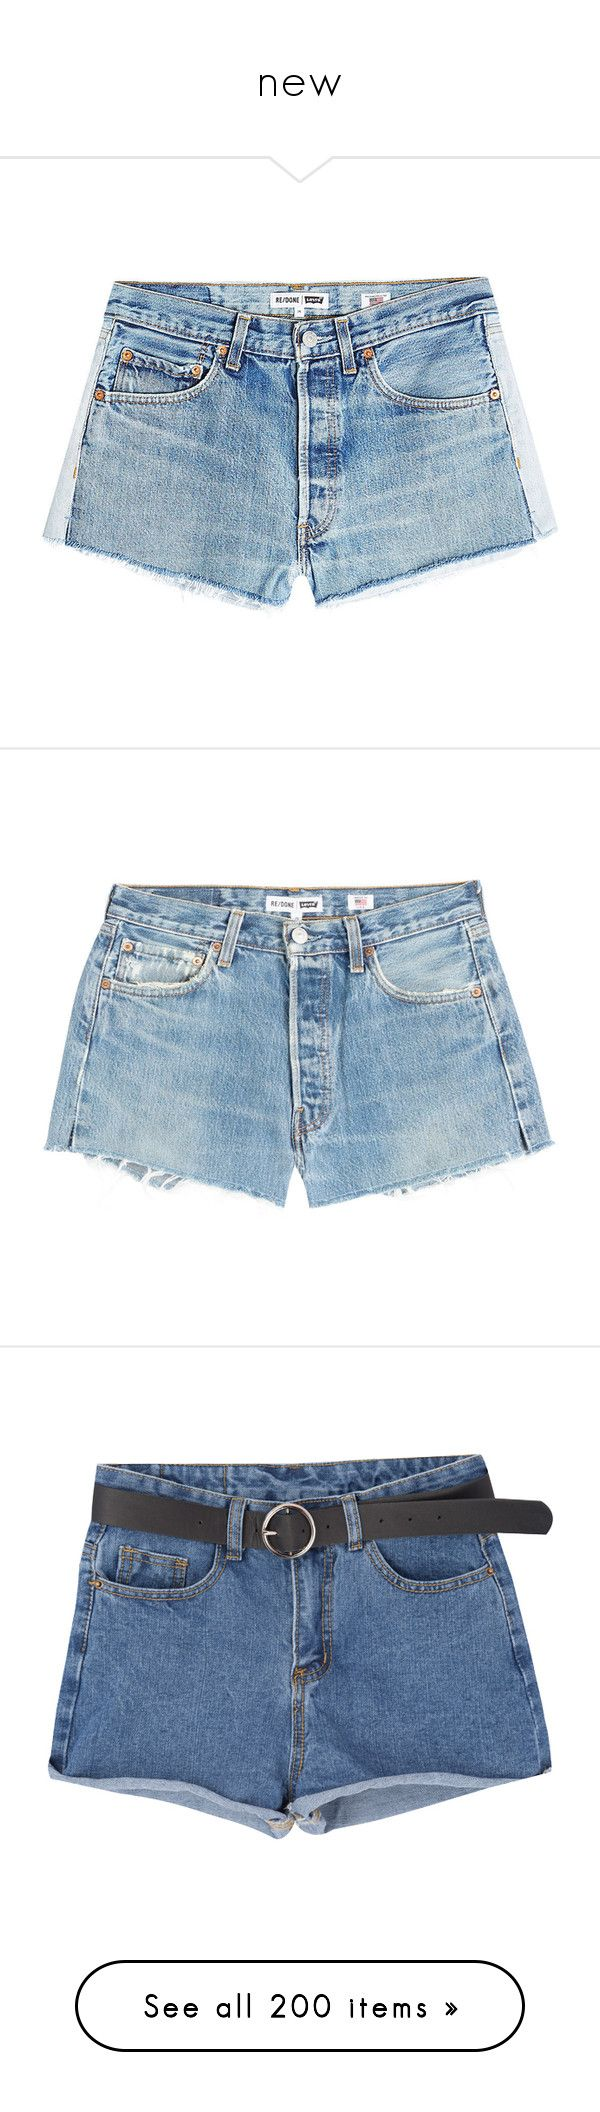 """""""new"""" by jojogena ❤ liked on Polyvore featuring shorts, bottoms, denim, blue, short jean shorts, cutoff shorts, cutoff jean shorts, t by alexander wang shorts, blue jean shorts and pants"""